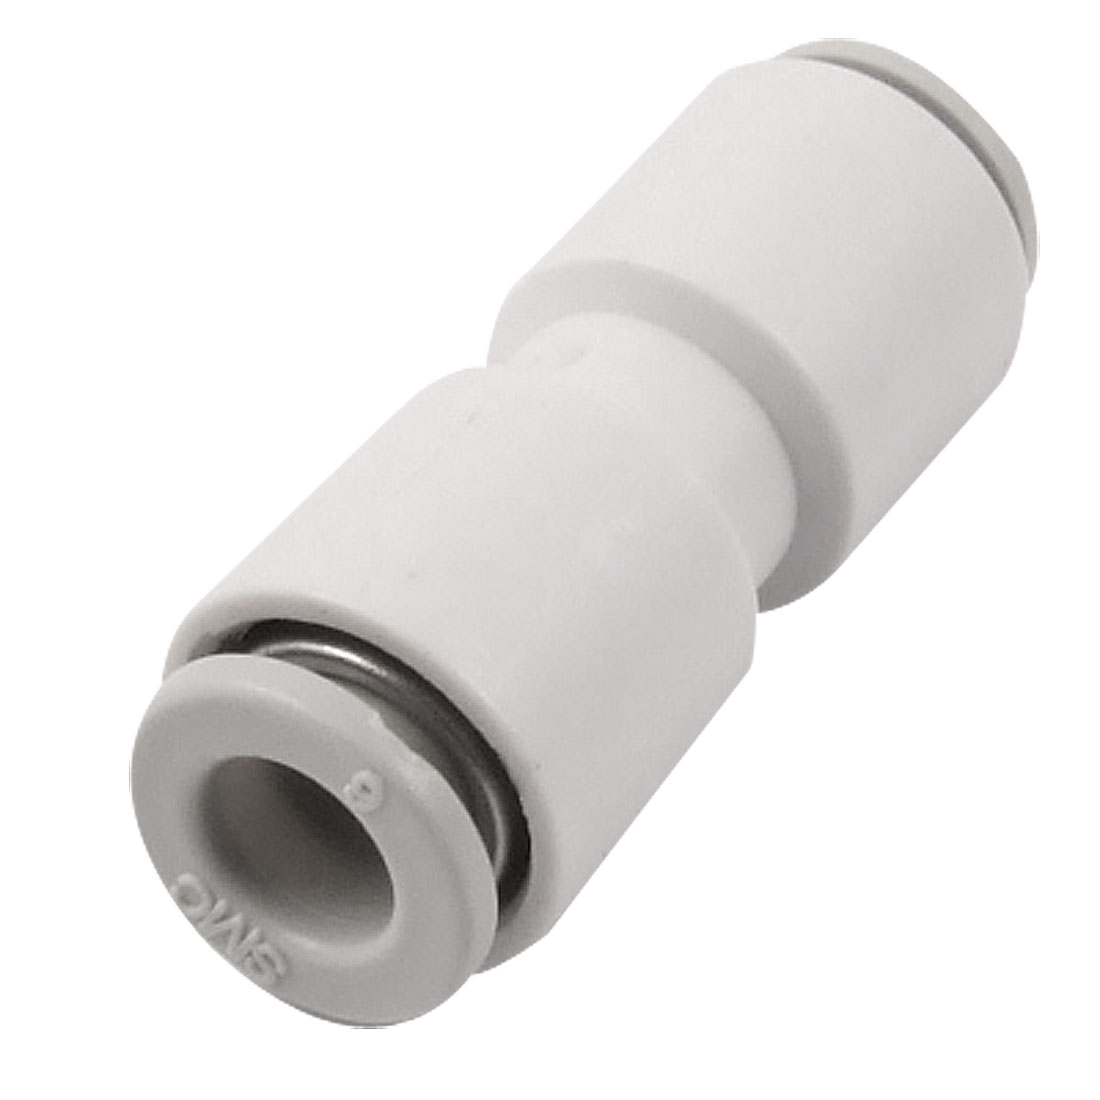 6mm Pneumatic Tube Straight Air Quick Connector One Touch Push In Fitting